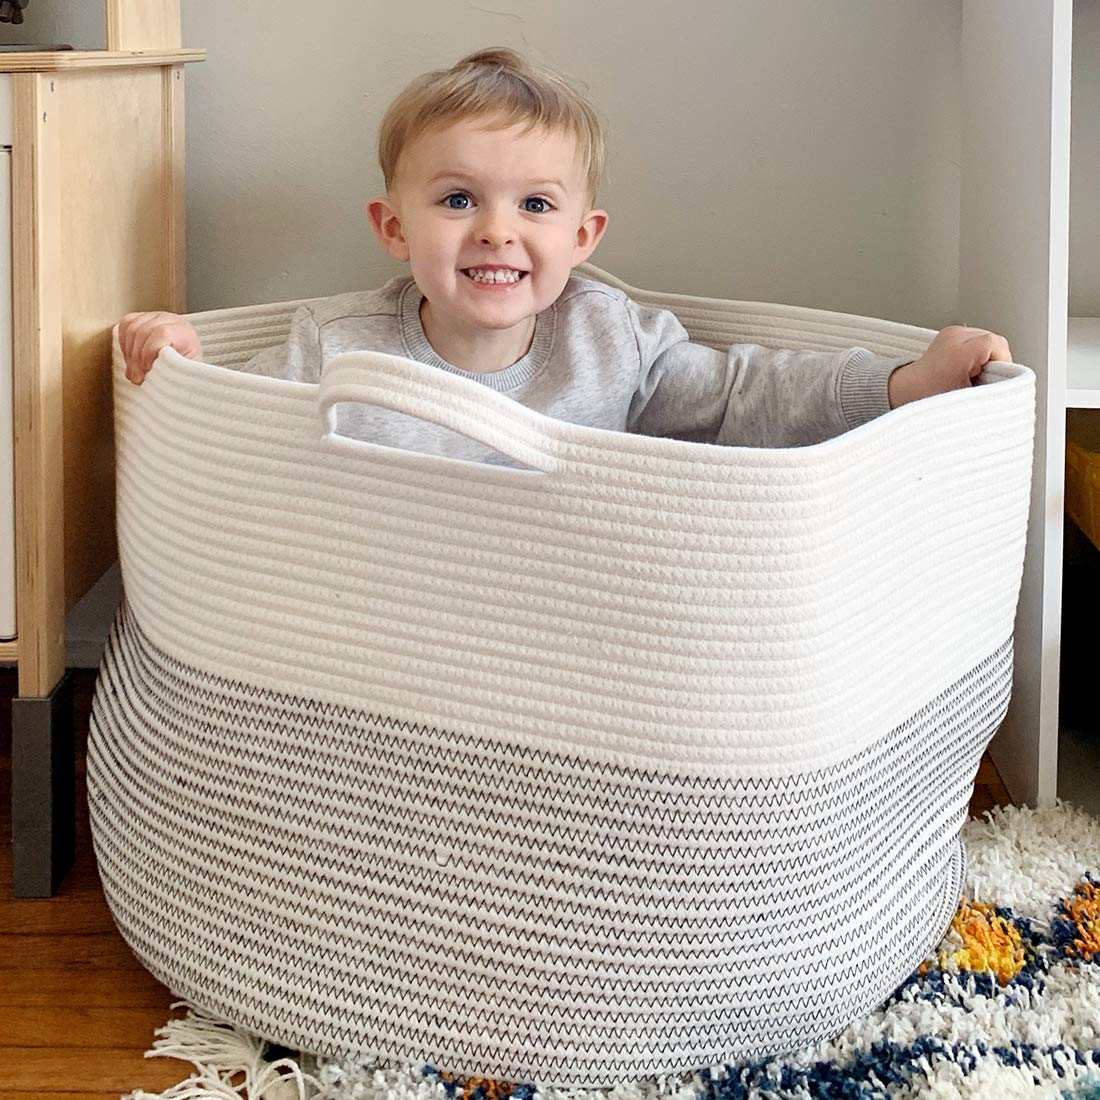 Goodpick Large Basket 23.6''D x 14.2''H | Jumbo Woven Basket | Cotton Rope Basket | Baby Laundry Basket Hamper with Handles for Comforter, Cushions, Quilt, Toy Bins, Brown Stitch by Goodpick